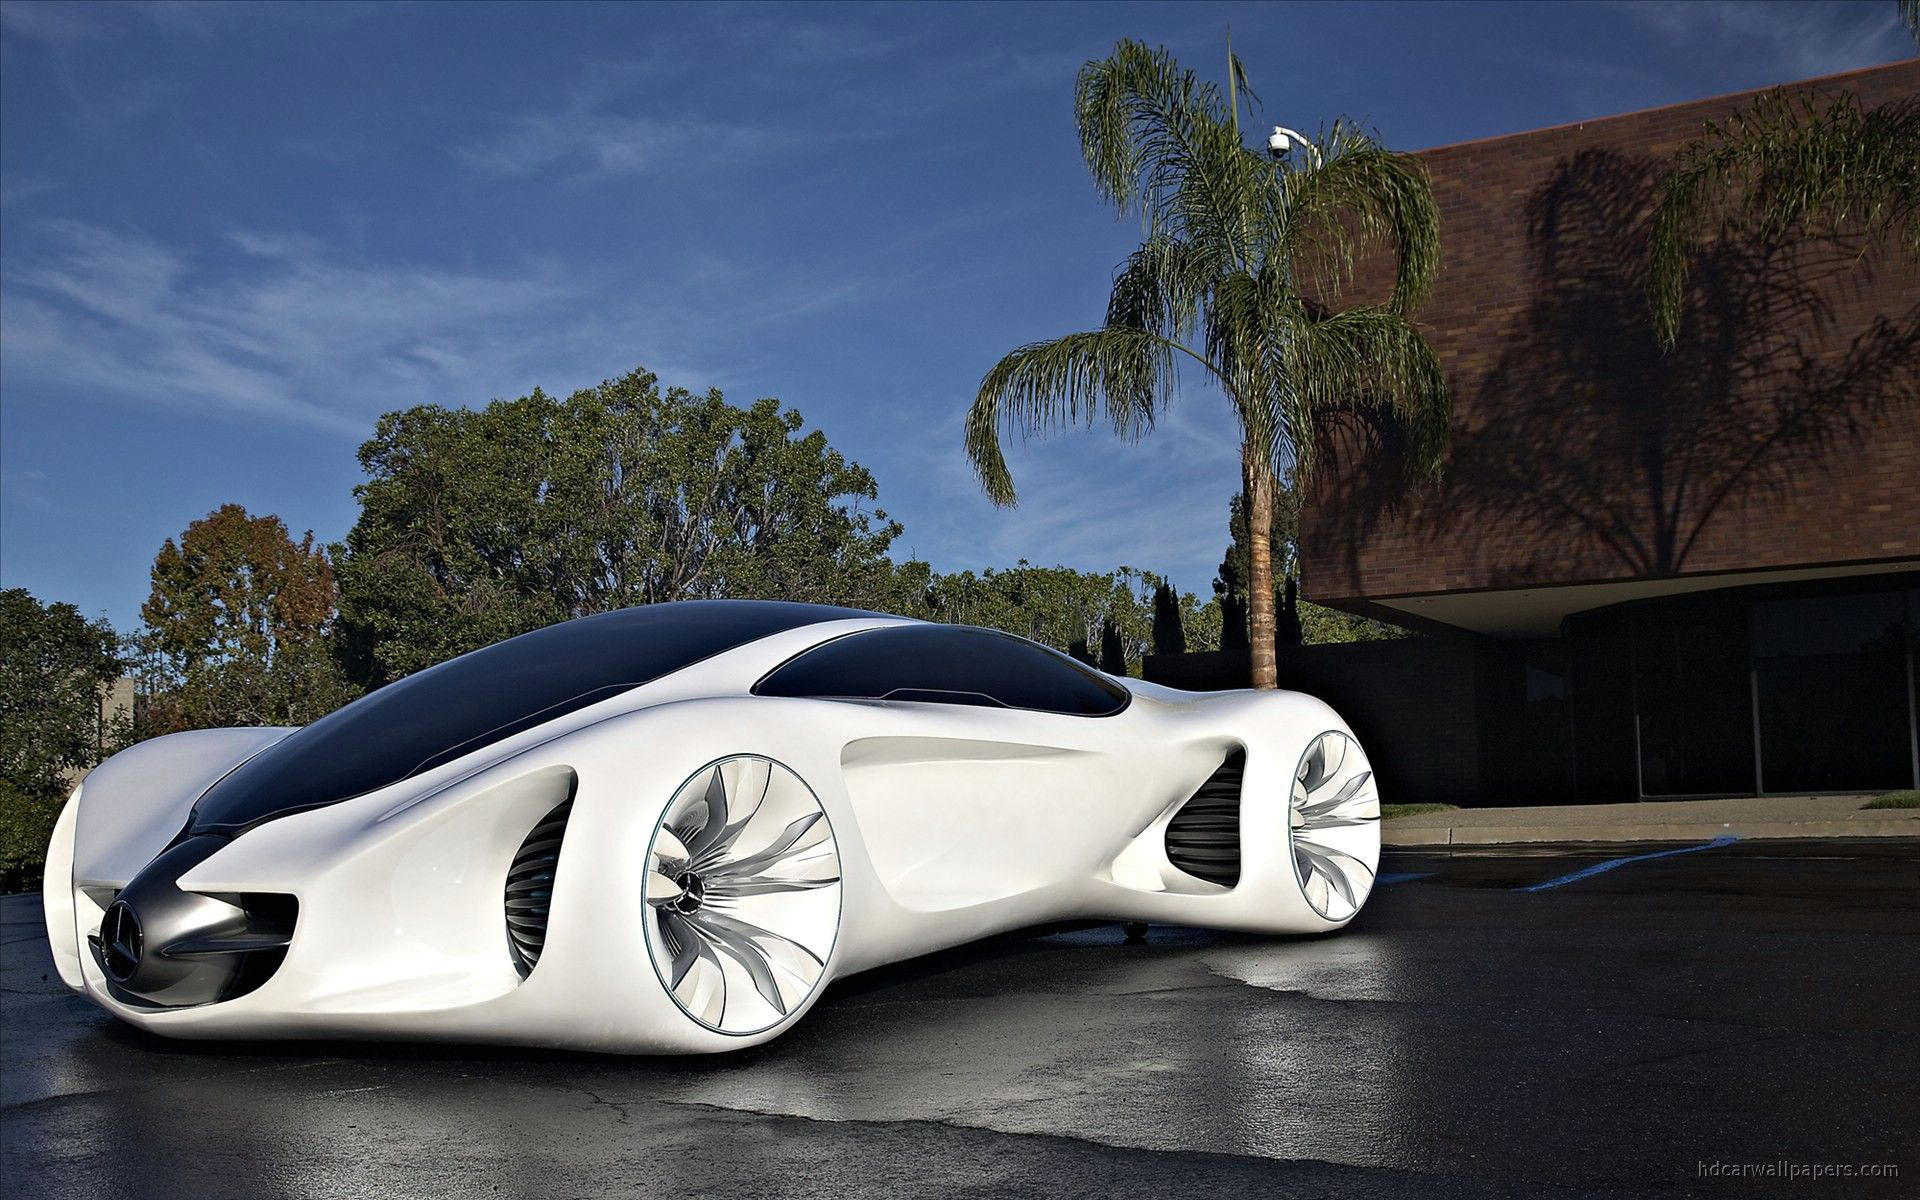 click here to download in hd format >> 2010 mercedes benz biome